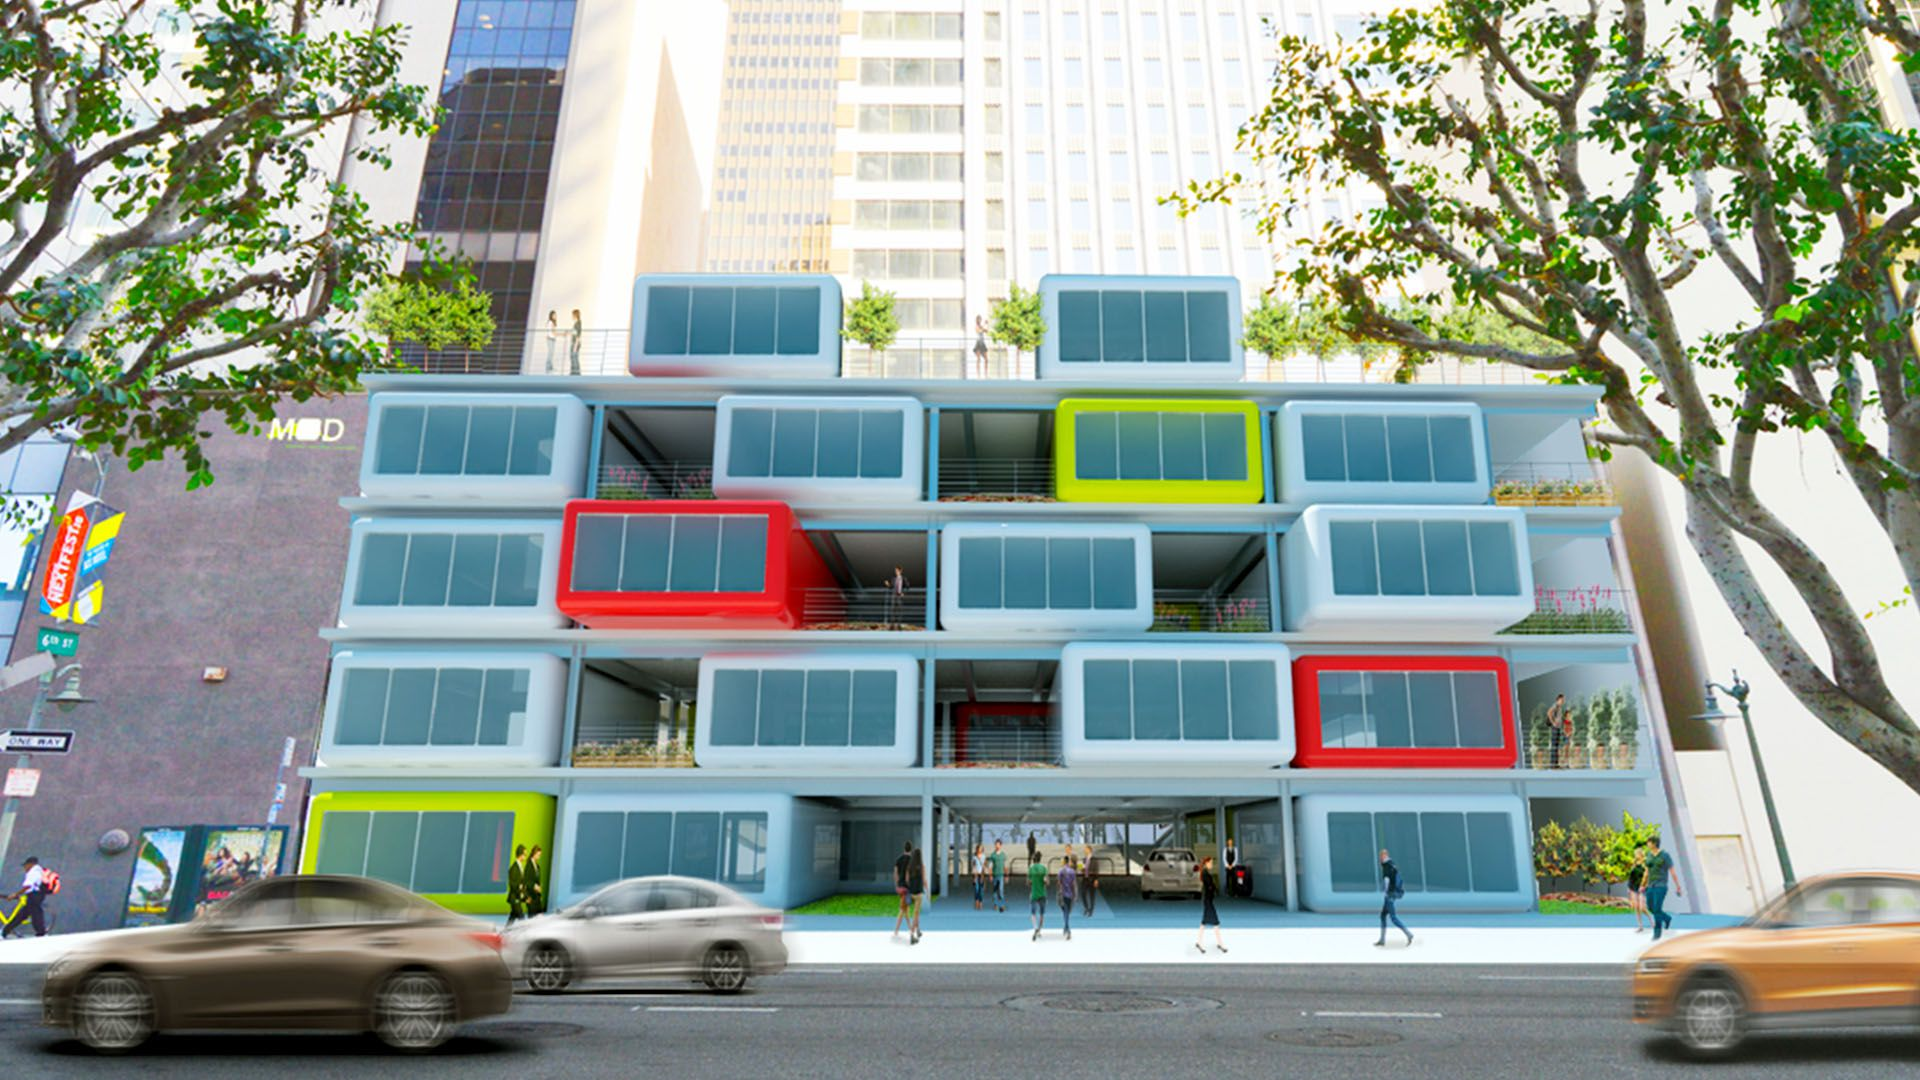 Architectural rendering of a repurposed parking structure in Los Angeles